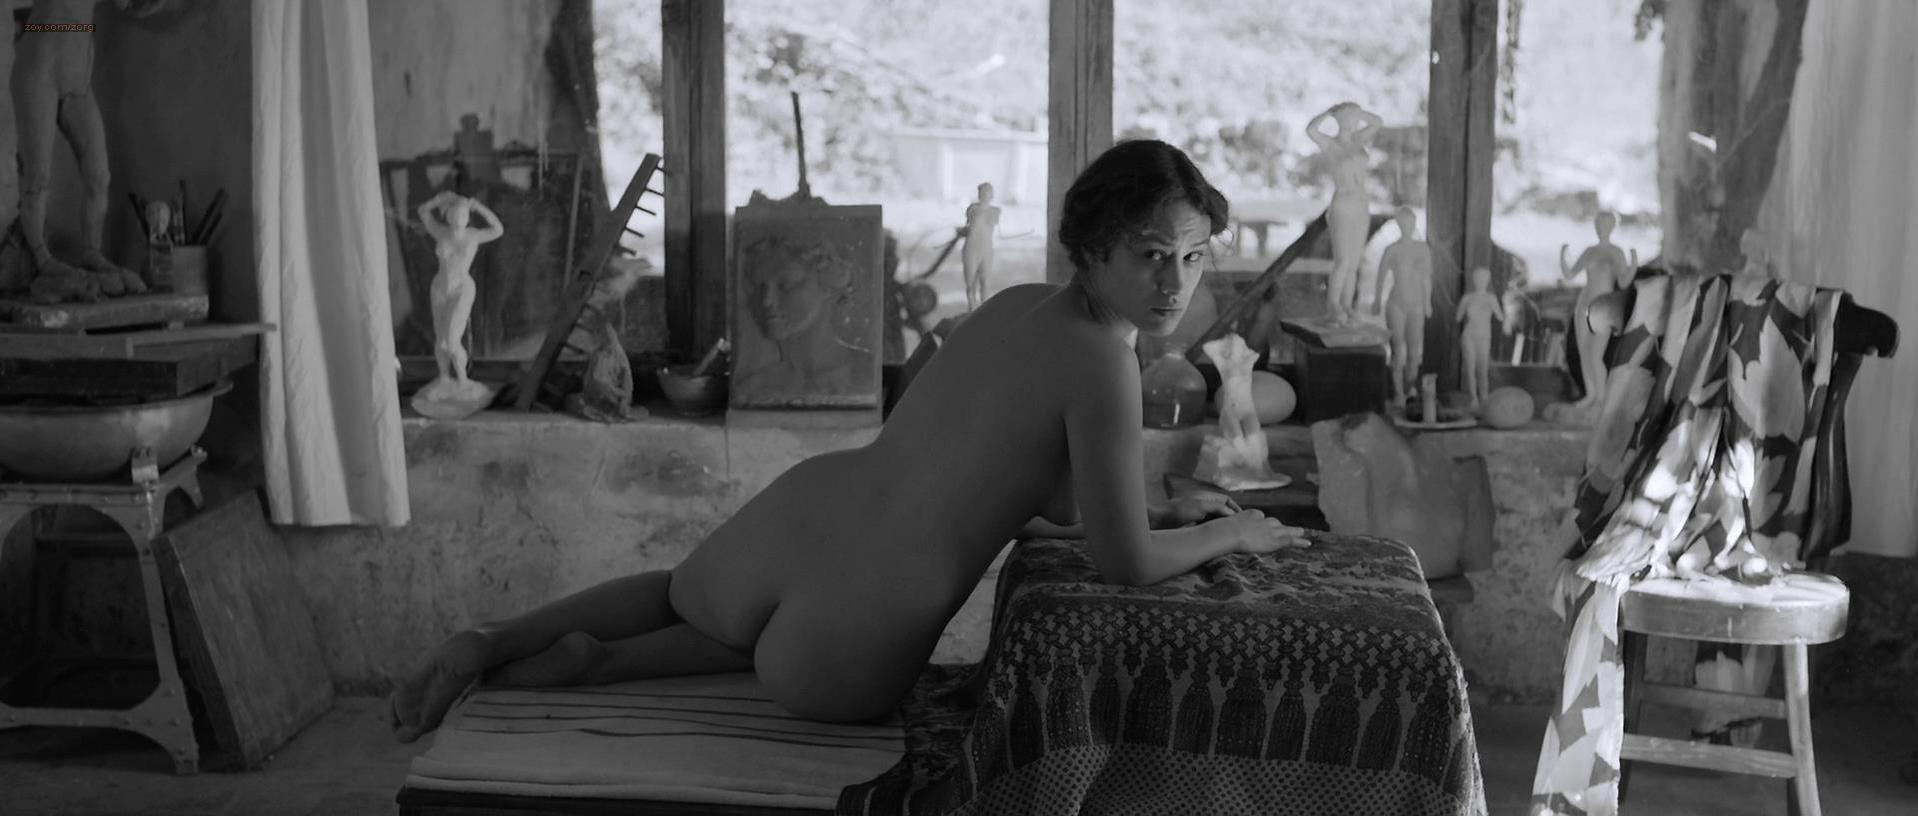 ... Aida Folch nude - The Artist and the Model (2012)